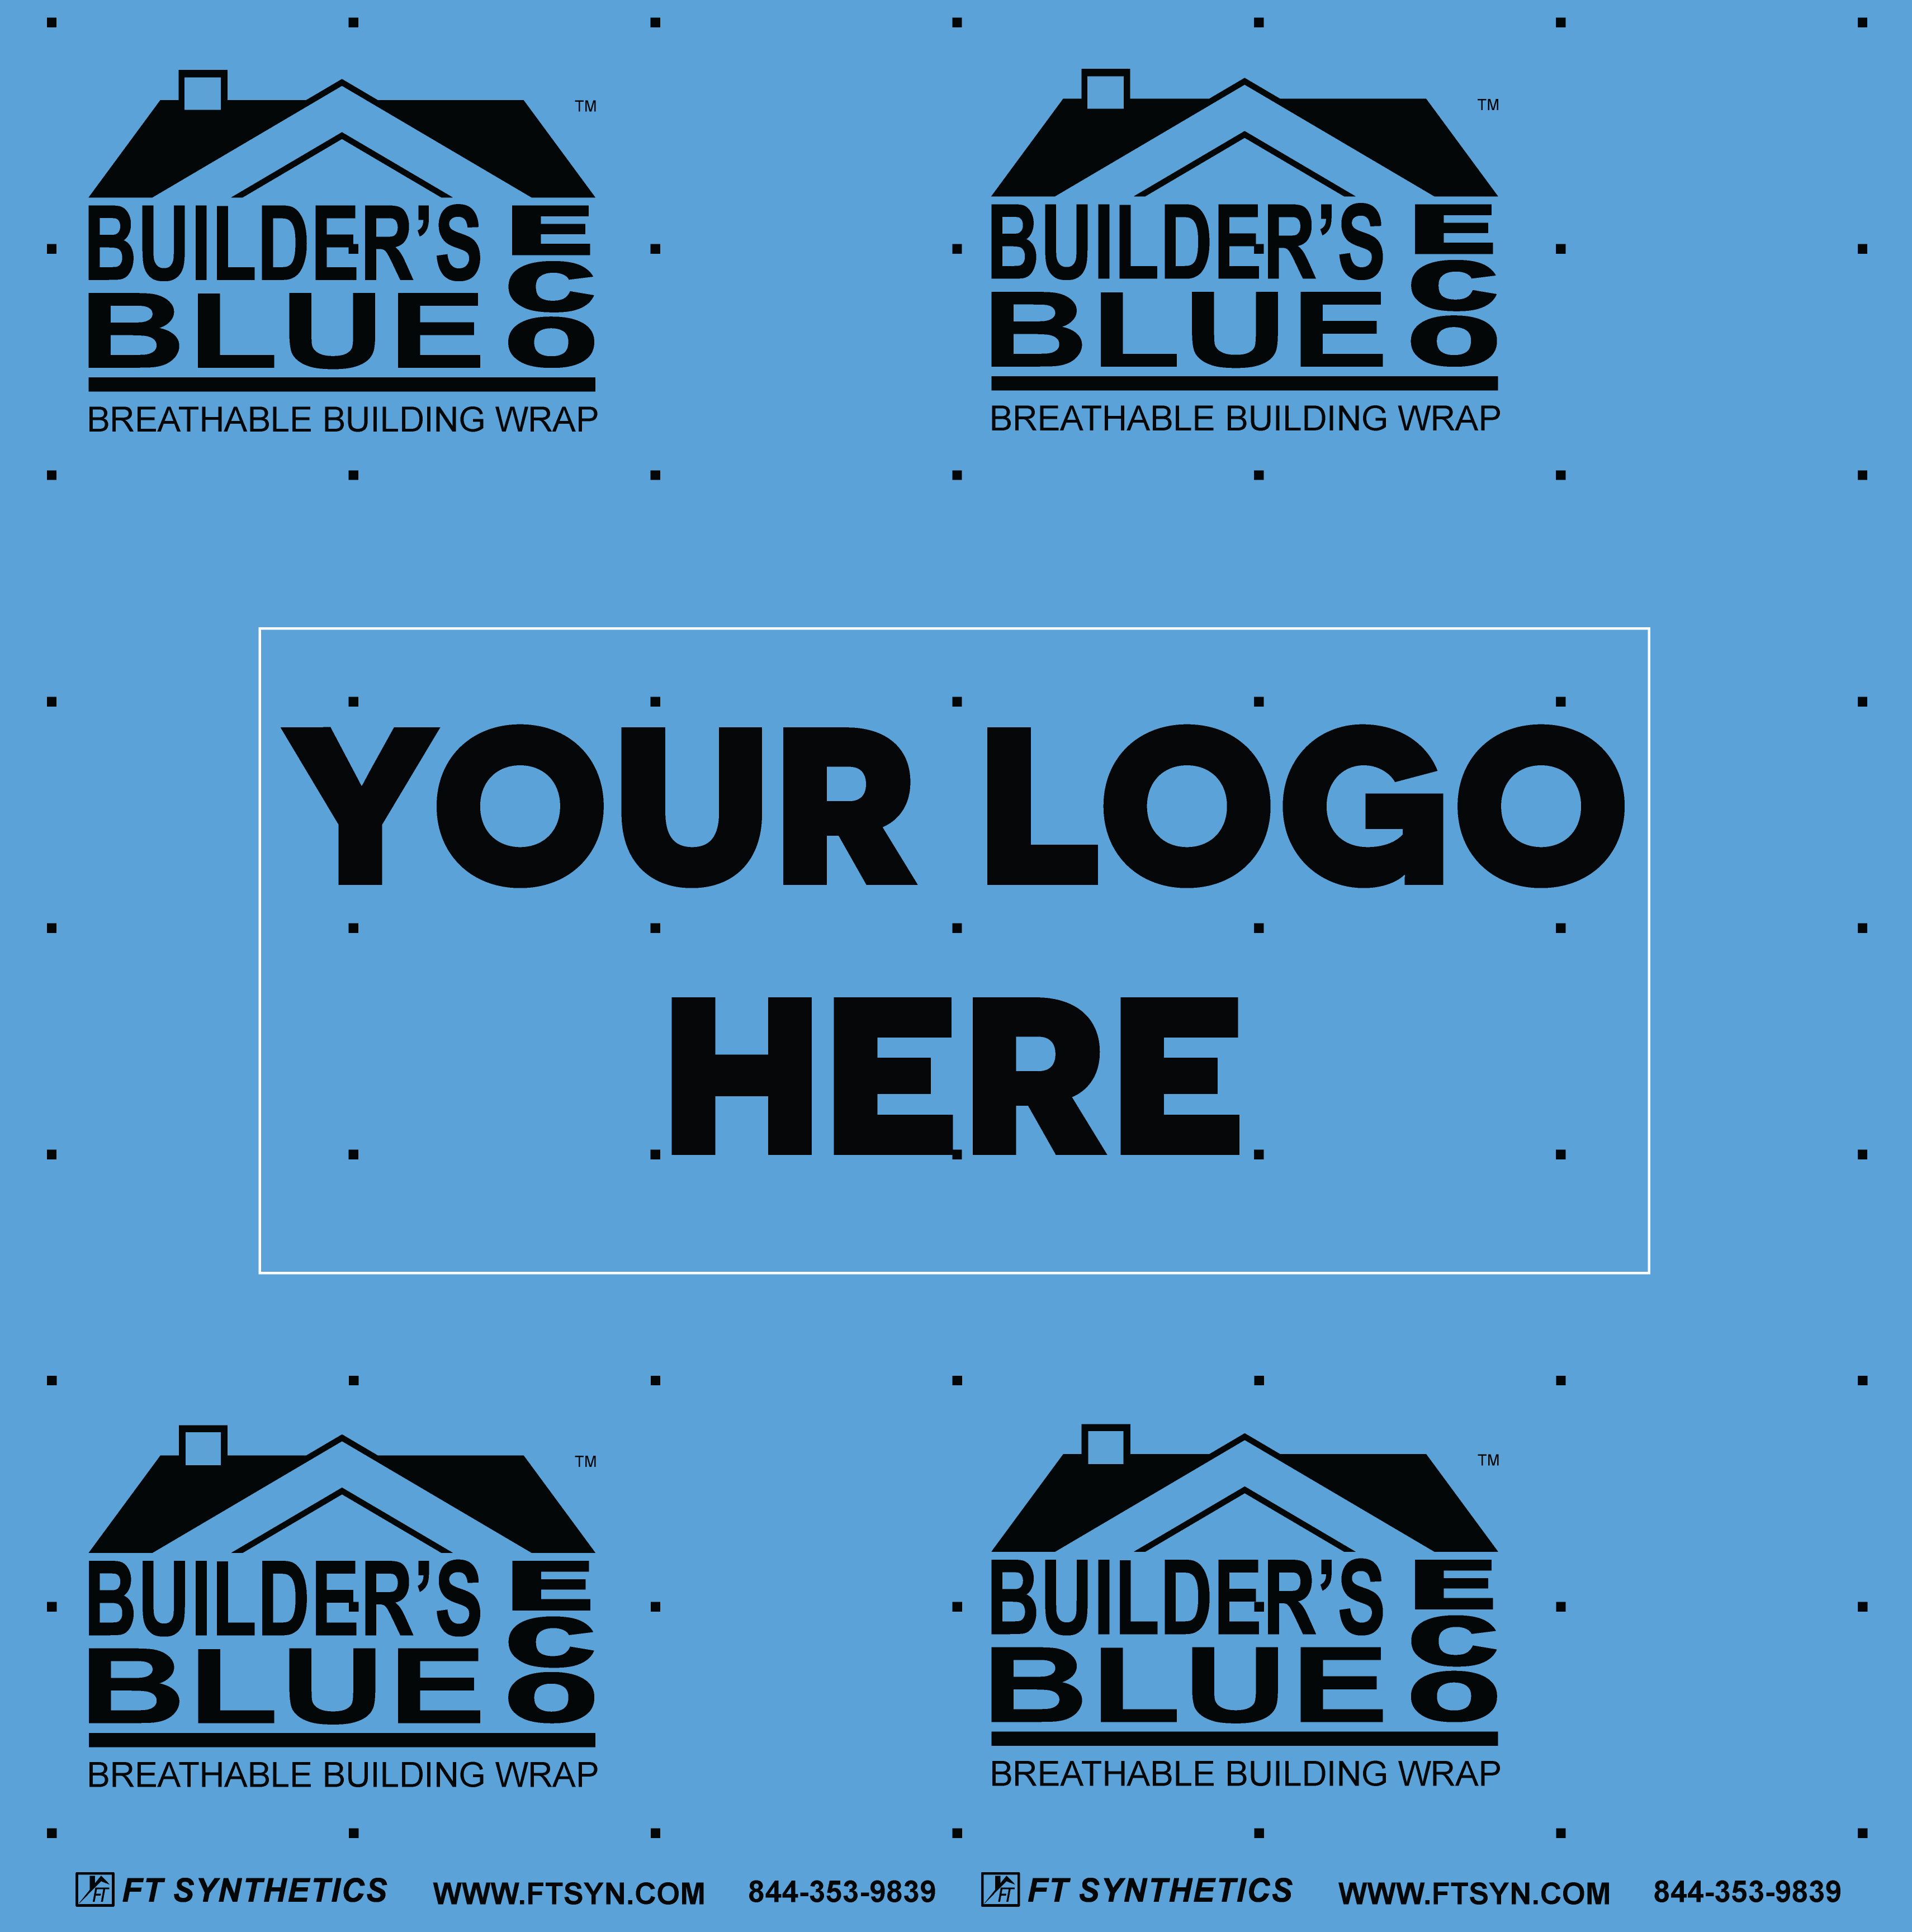 FT-your_logo_here_builders-blue-eco